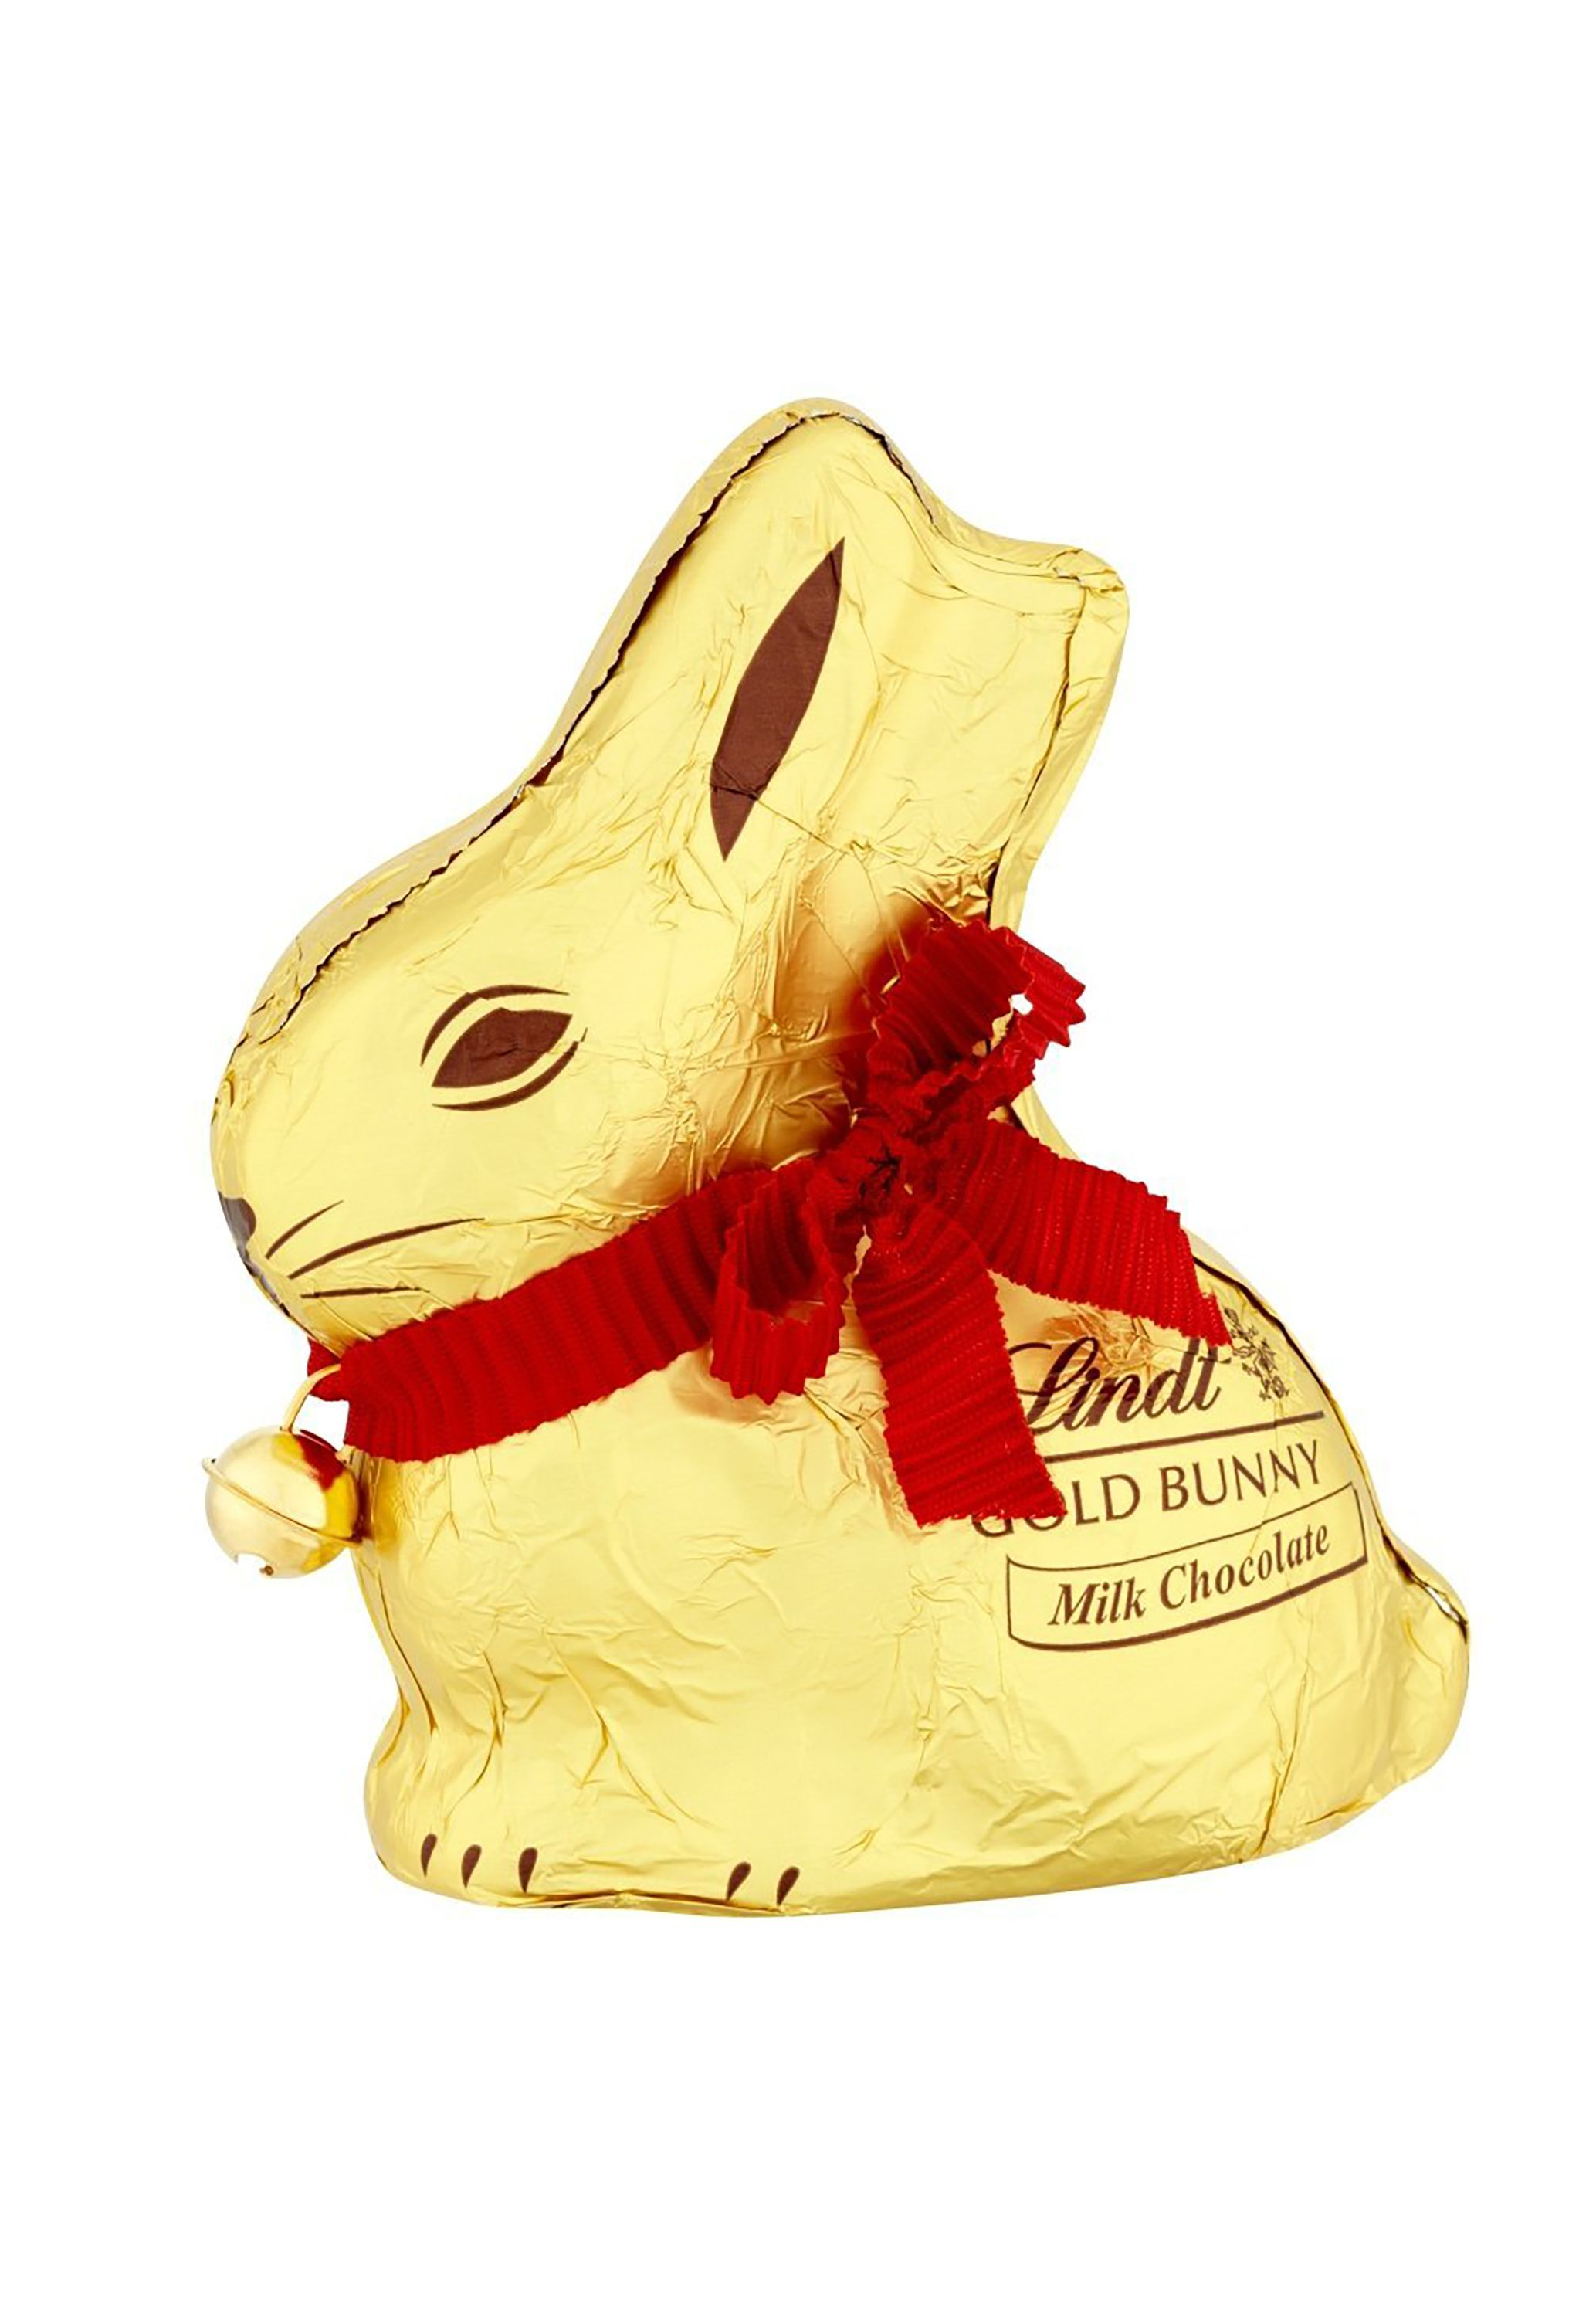 lindt milk chocolate bunny